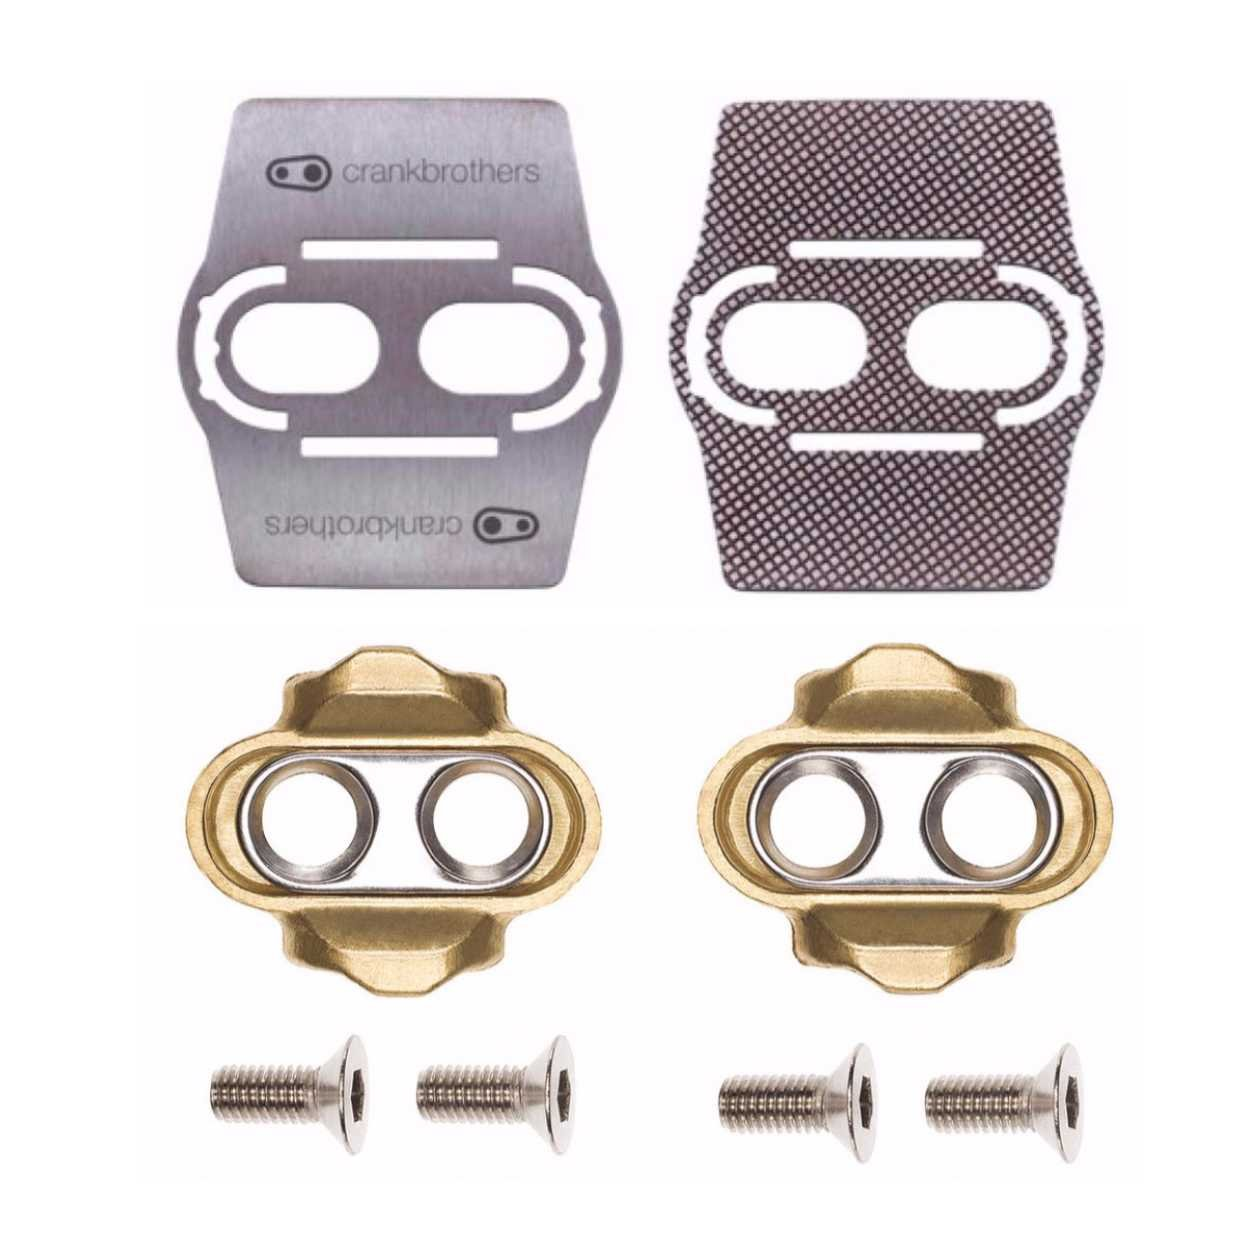 Crank Brothers Premium Cleats and Bike Shoe Shields MTB Pair: for Eggbeater, Candy, Smarty, Mallet Pedals Etc.